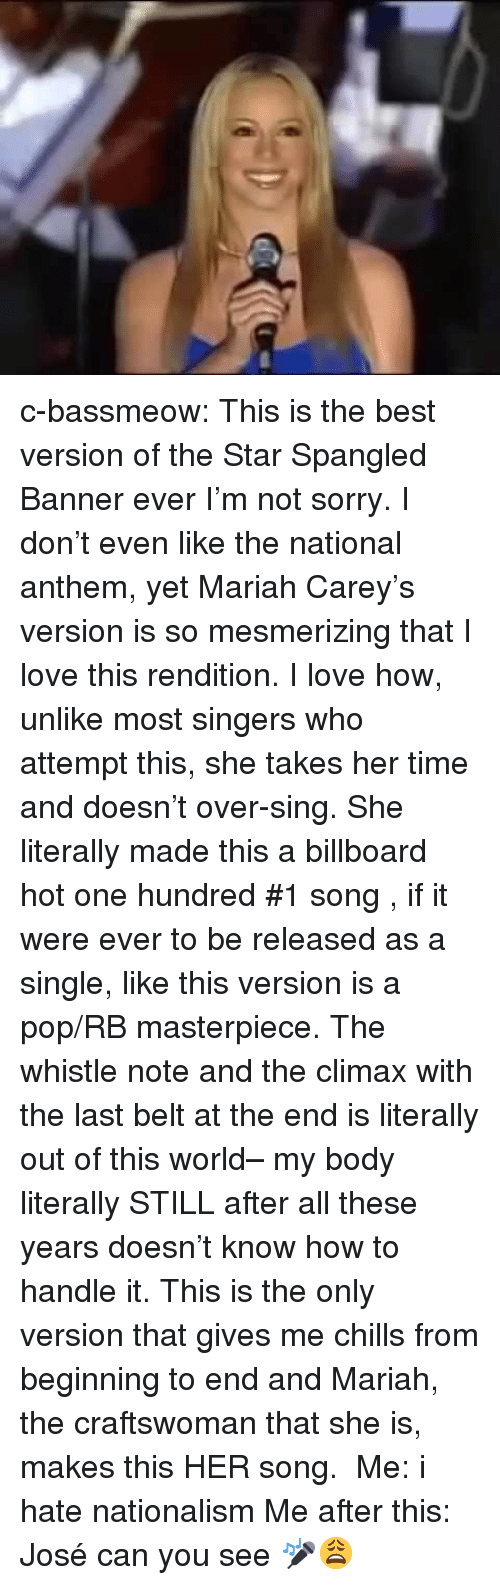 Billboard, Love, and Mariah Carey: c-bassmeow:  This is the best version of the Star Spangled Banner ever I'm not sorry. I don't even like the national anthem, yet Mariah Carey's version is so mesmerizing that I love this rendition. I love how, unlike most singers who attempt this, she takes her time and doesn't over-sing. She literally made this a billboard hot one hundred #1 song , if it were ever to be released as a single, like this version is a pop/RB masterpiece. The whistle note and the climax with the last belt at the end is literally out of this world– my body literally STILL after all these years doesn't know how to handle it. This is the only version that gives me chills from beginning to end and Mariah, the craftswoman that she is, makes this HER song.  Me: i hate nationalism Me after this: José can you see 🎤😩